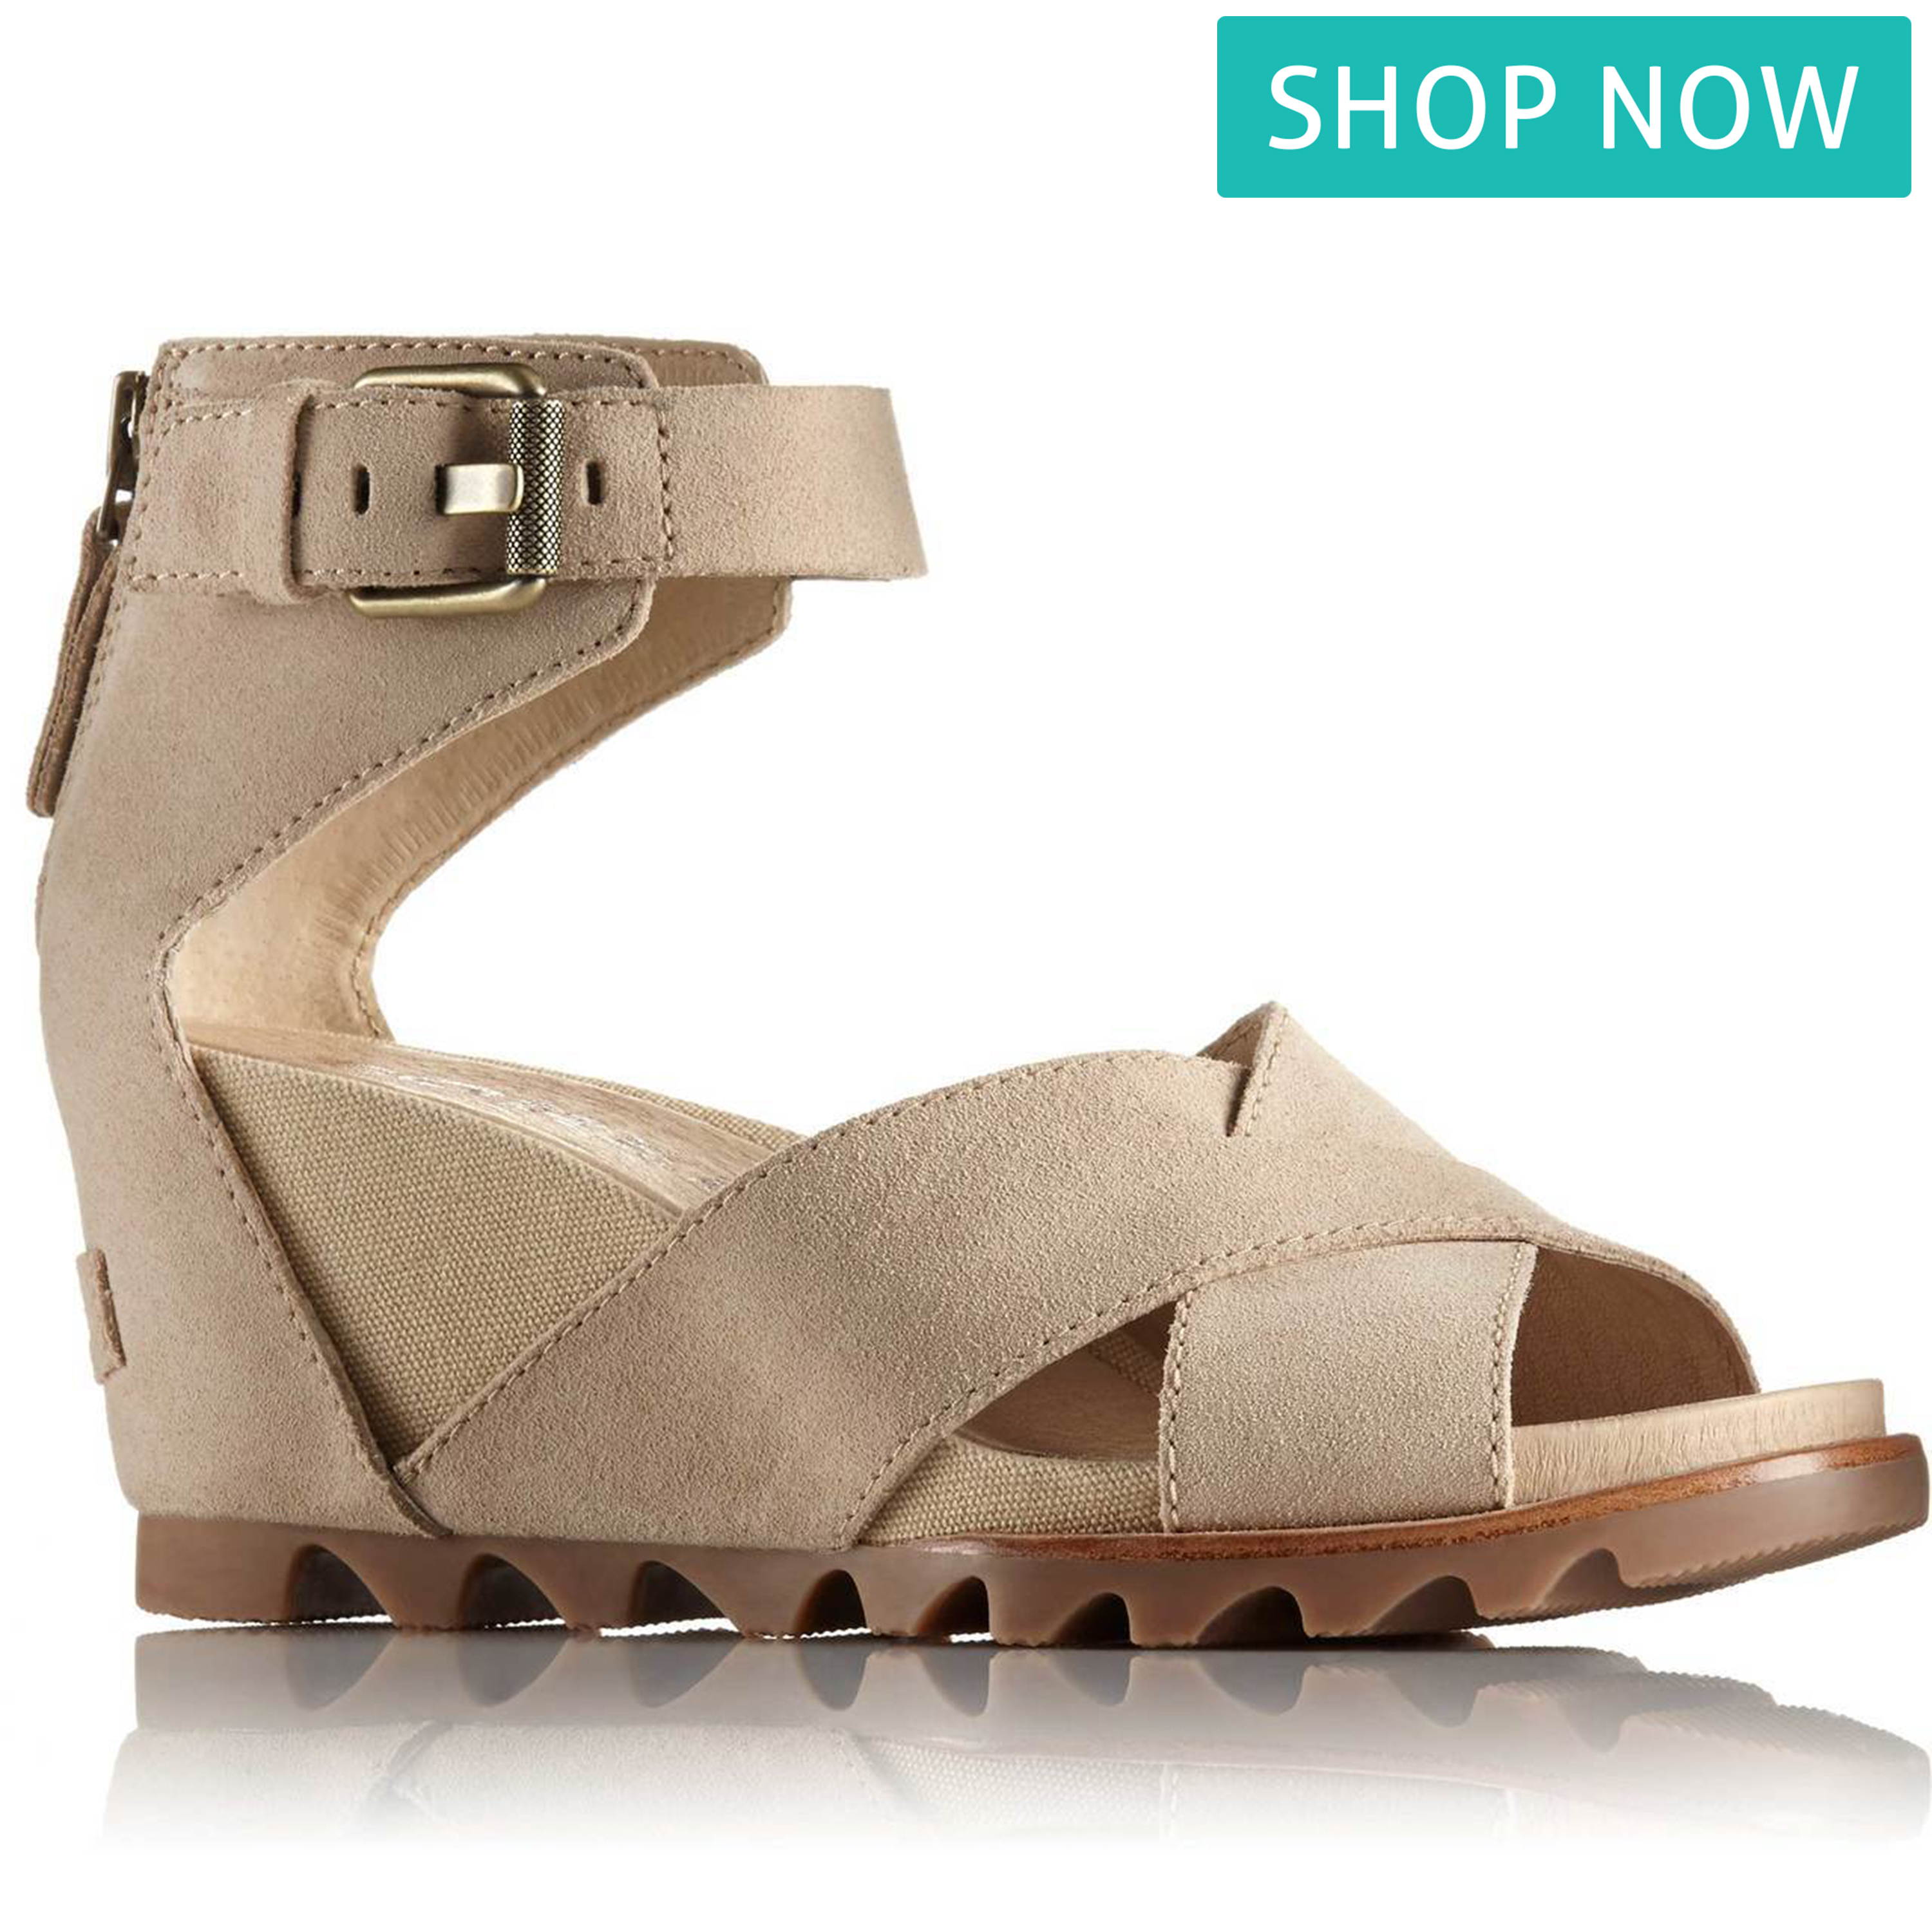 Sandals for girls - an important element of the wardrobe